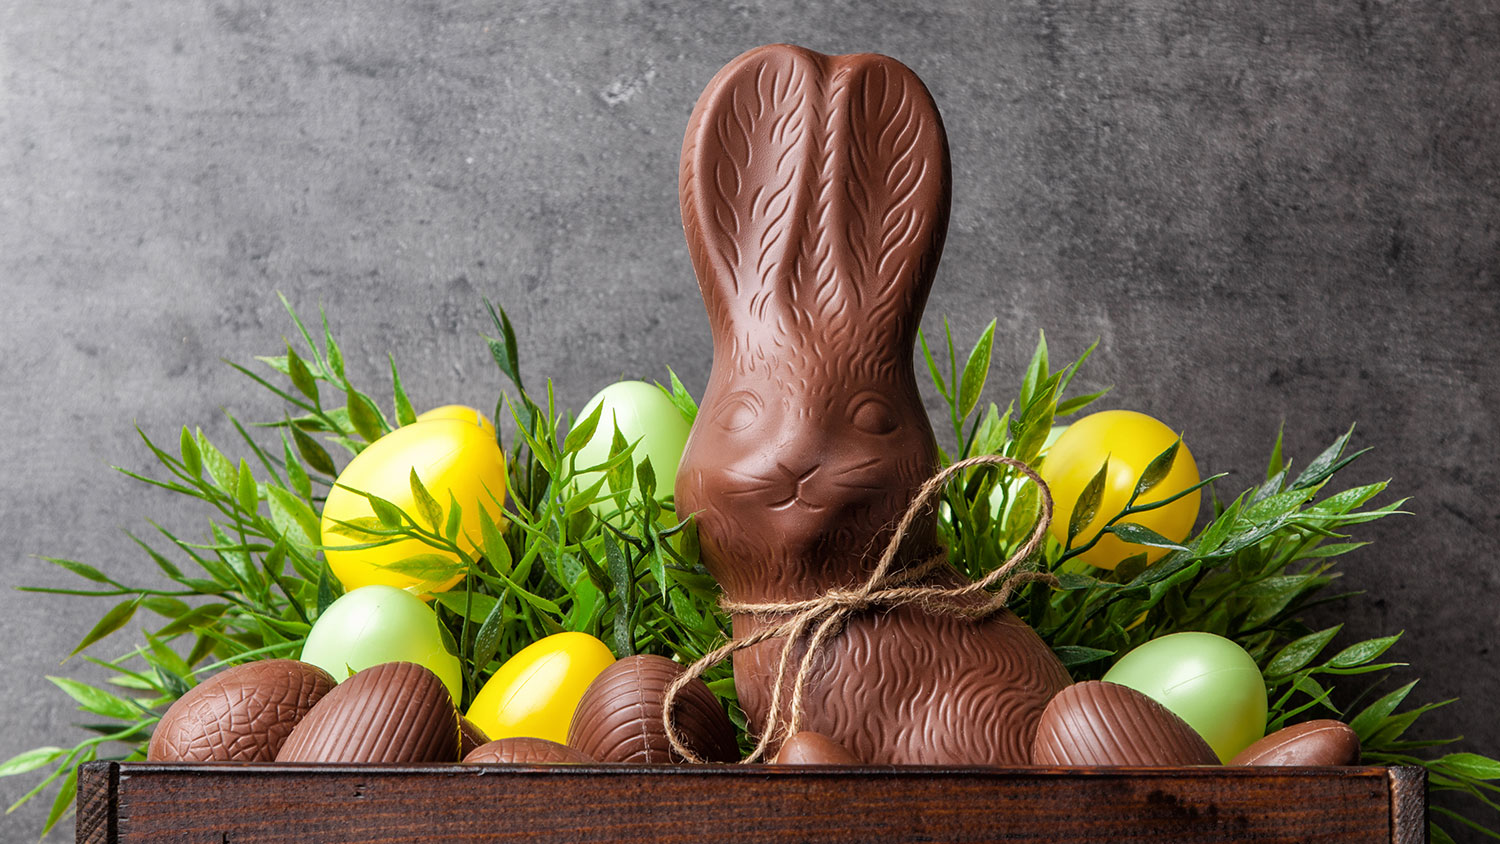 All of Your Questions About Chocolate Bunnies, Answered